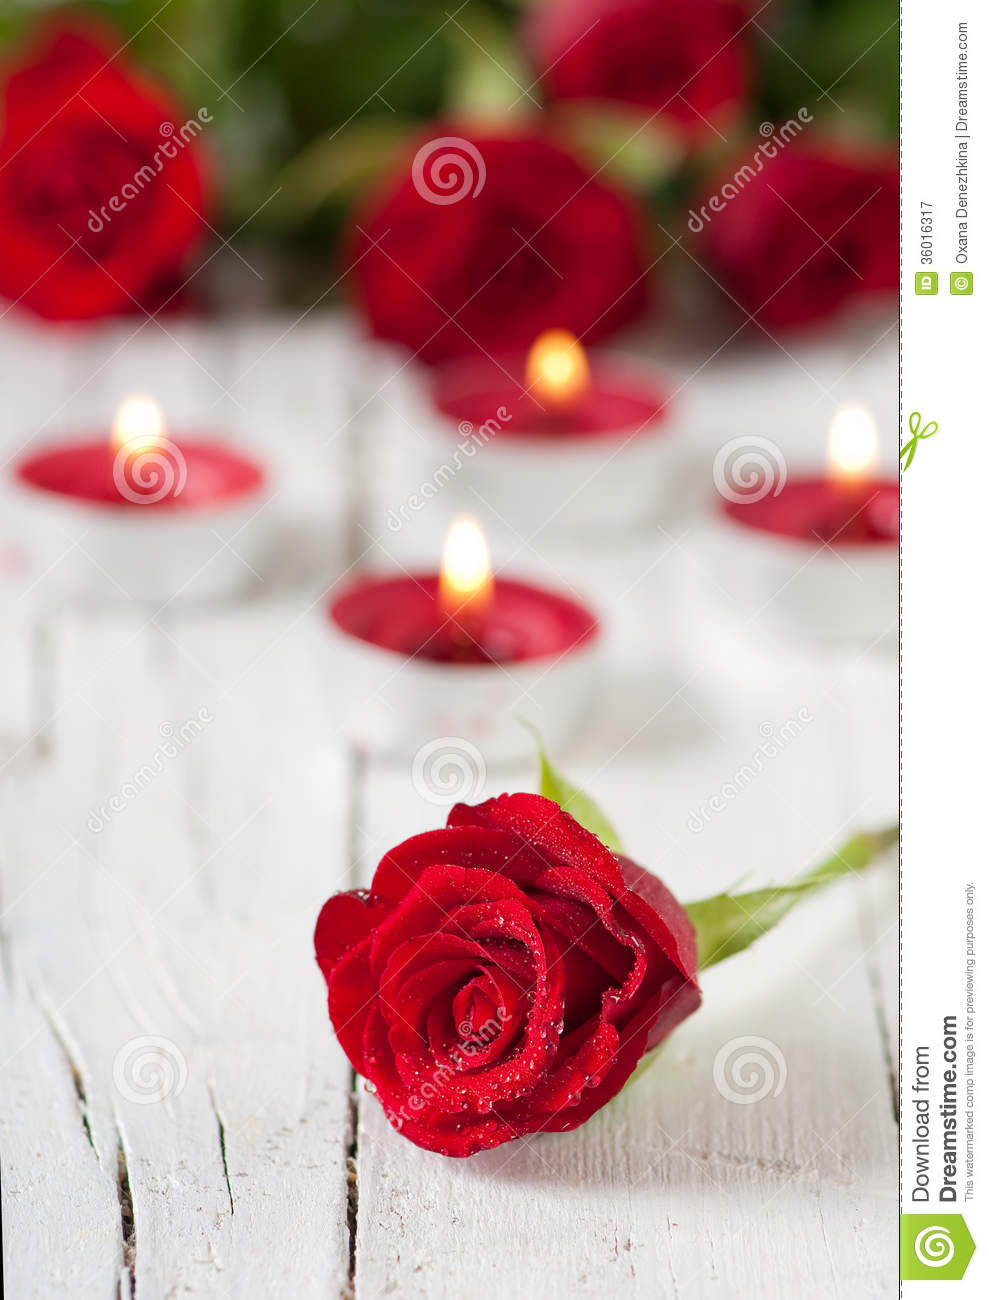 knumathise red roses with candles images, Beautiful flower